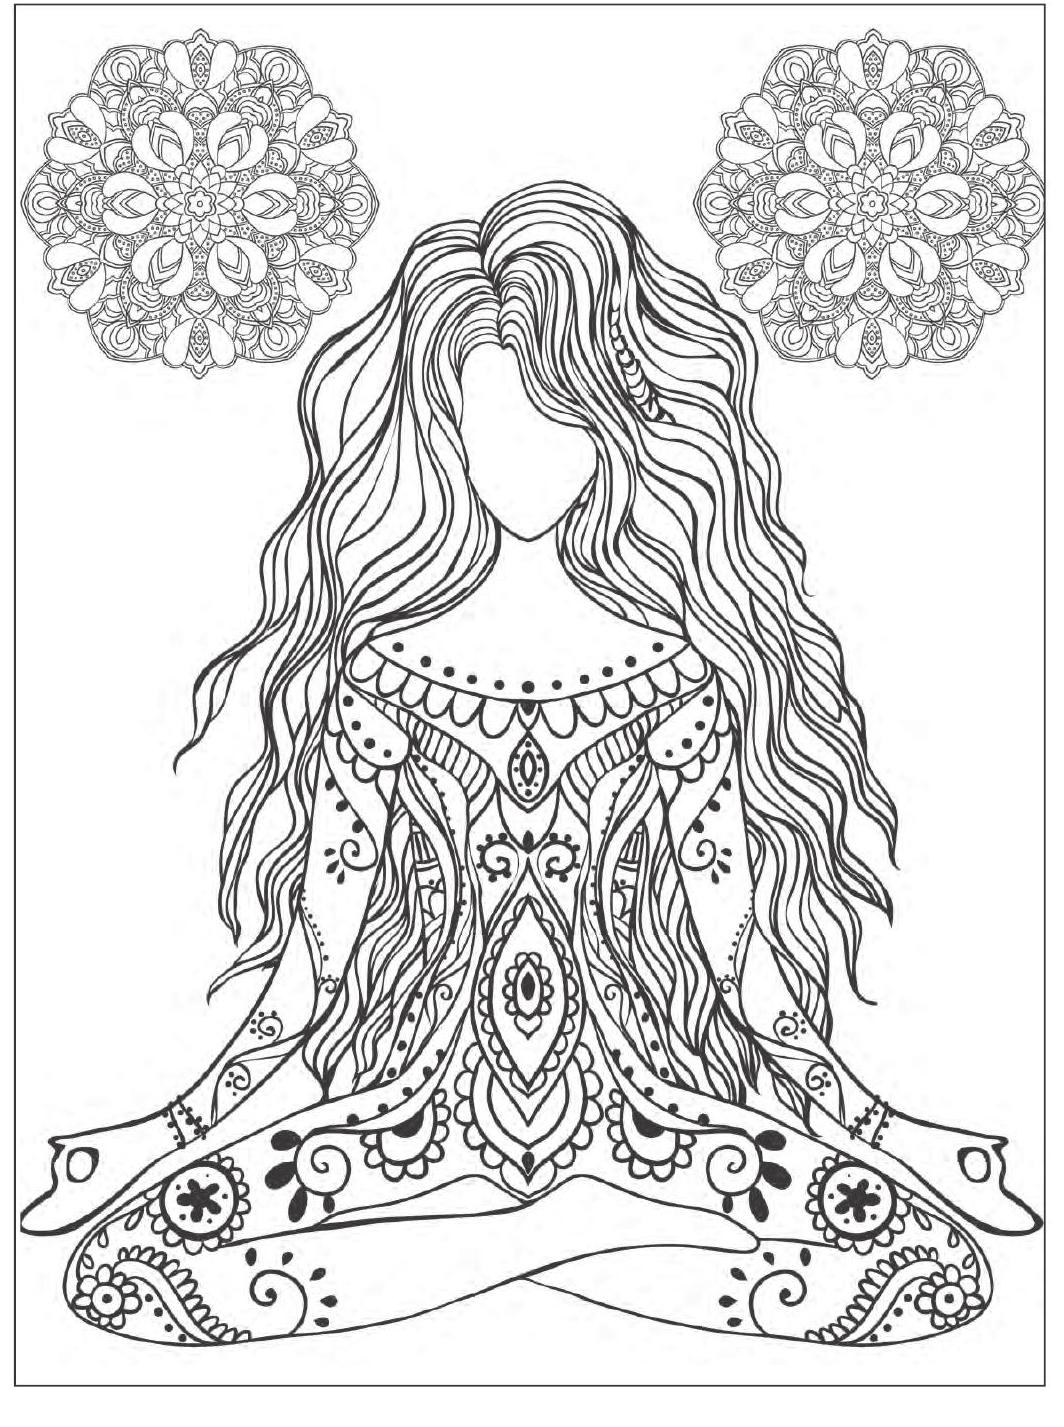 1064x1427 Coloring Pages. Meditation Coloring Pages